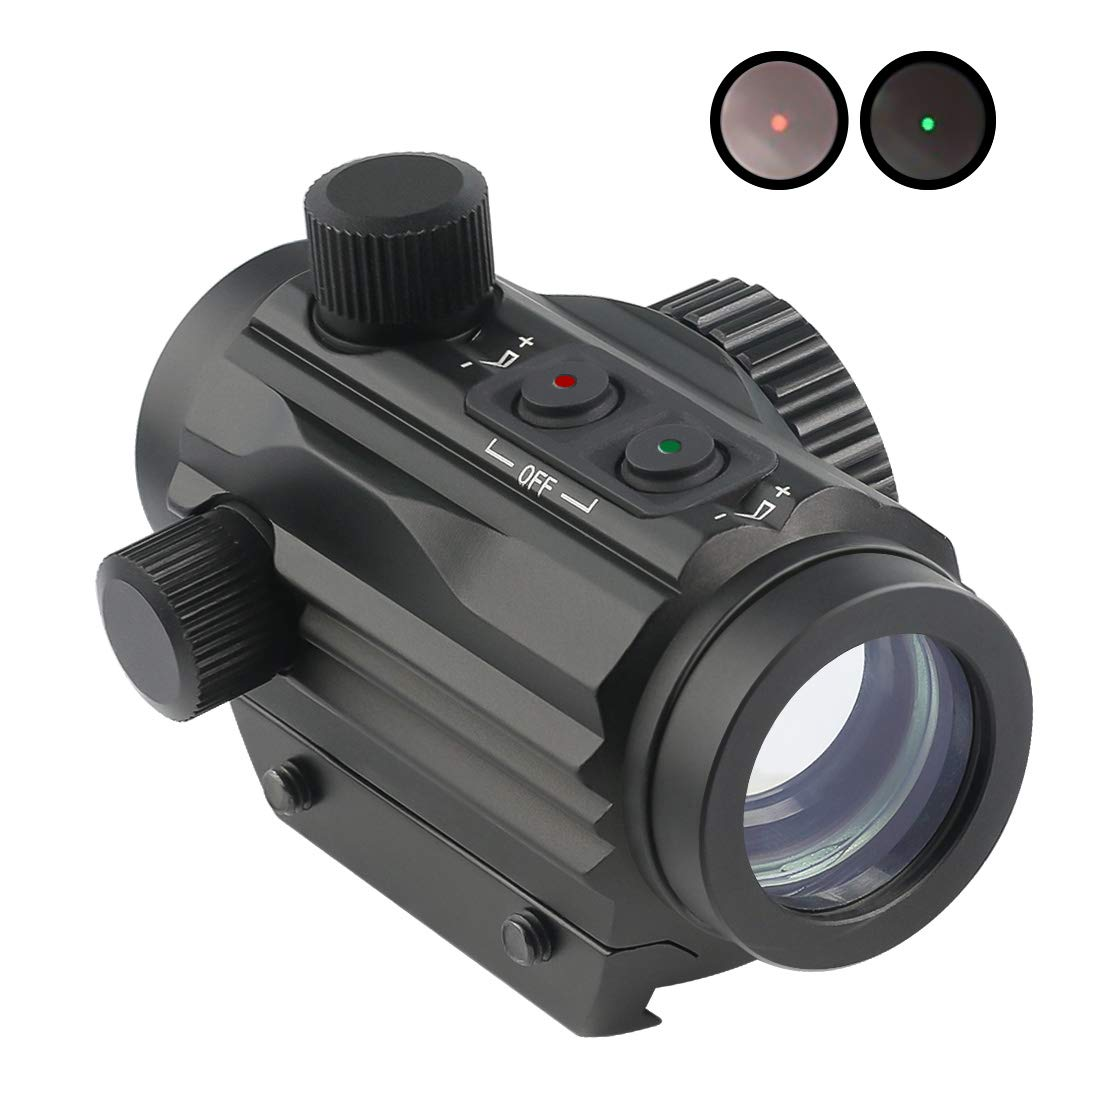 Twod 1x22mm 5 MOA Red Green Dot Sight,Reflex Holographic Tactical Scope Dual Color Illuminated Compact Micro Red/Green Reticle with Circle Dot Micro Rifle Scope Fits 21mm Picatinny Rail Mount by Twod